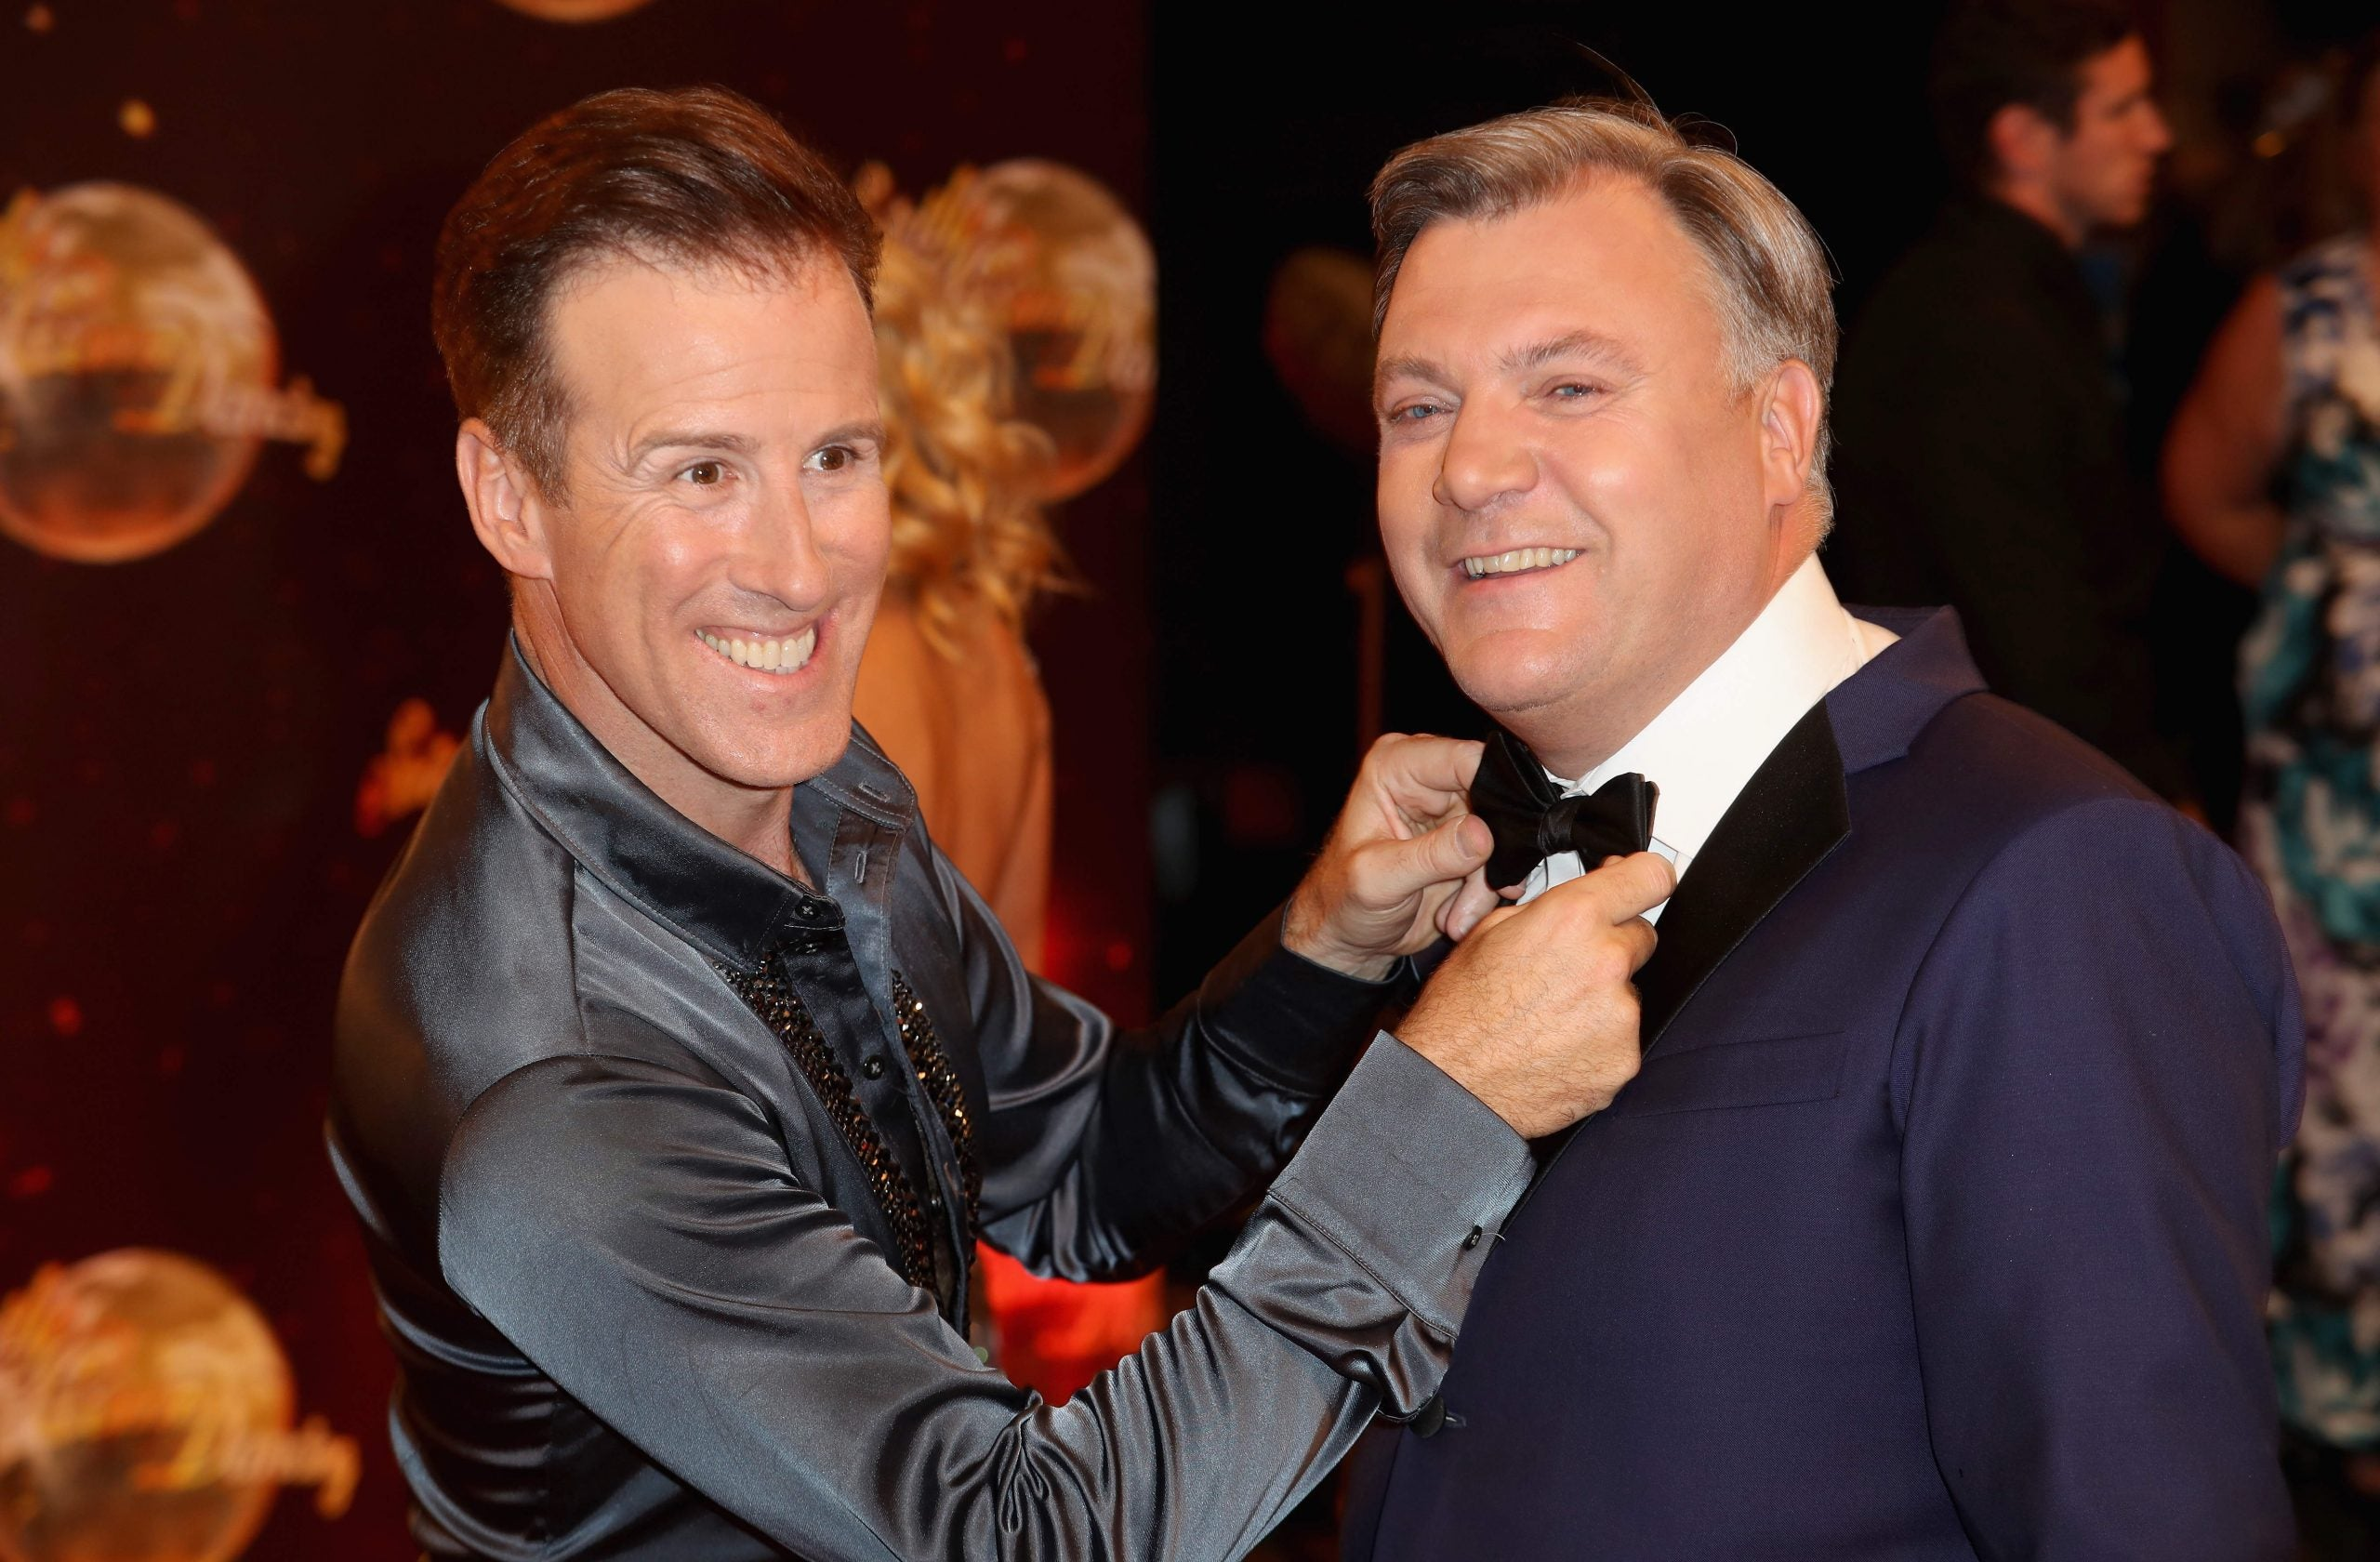 My advice to Ed Balls? Send that shirt to a Labour jumble sale